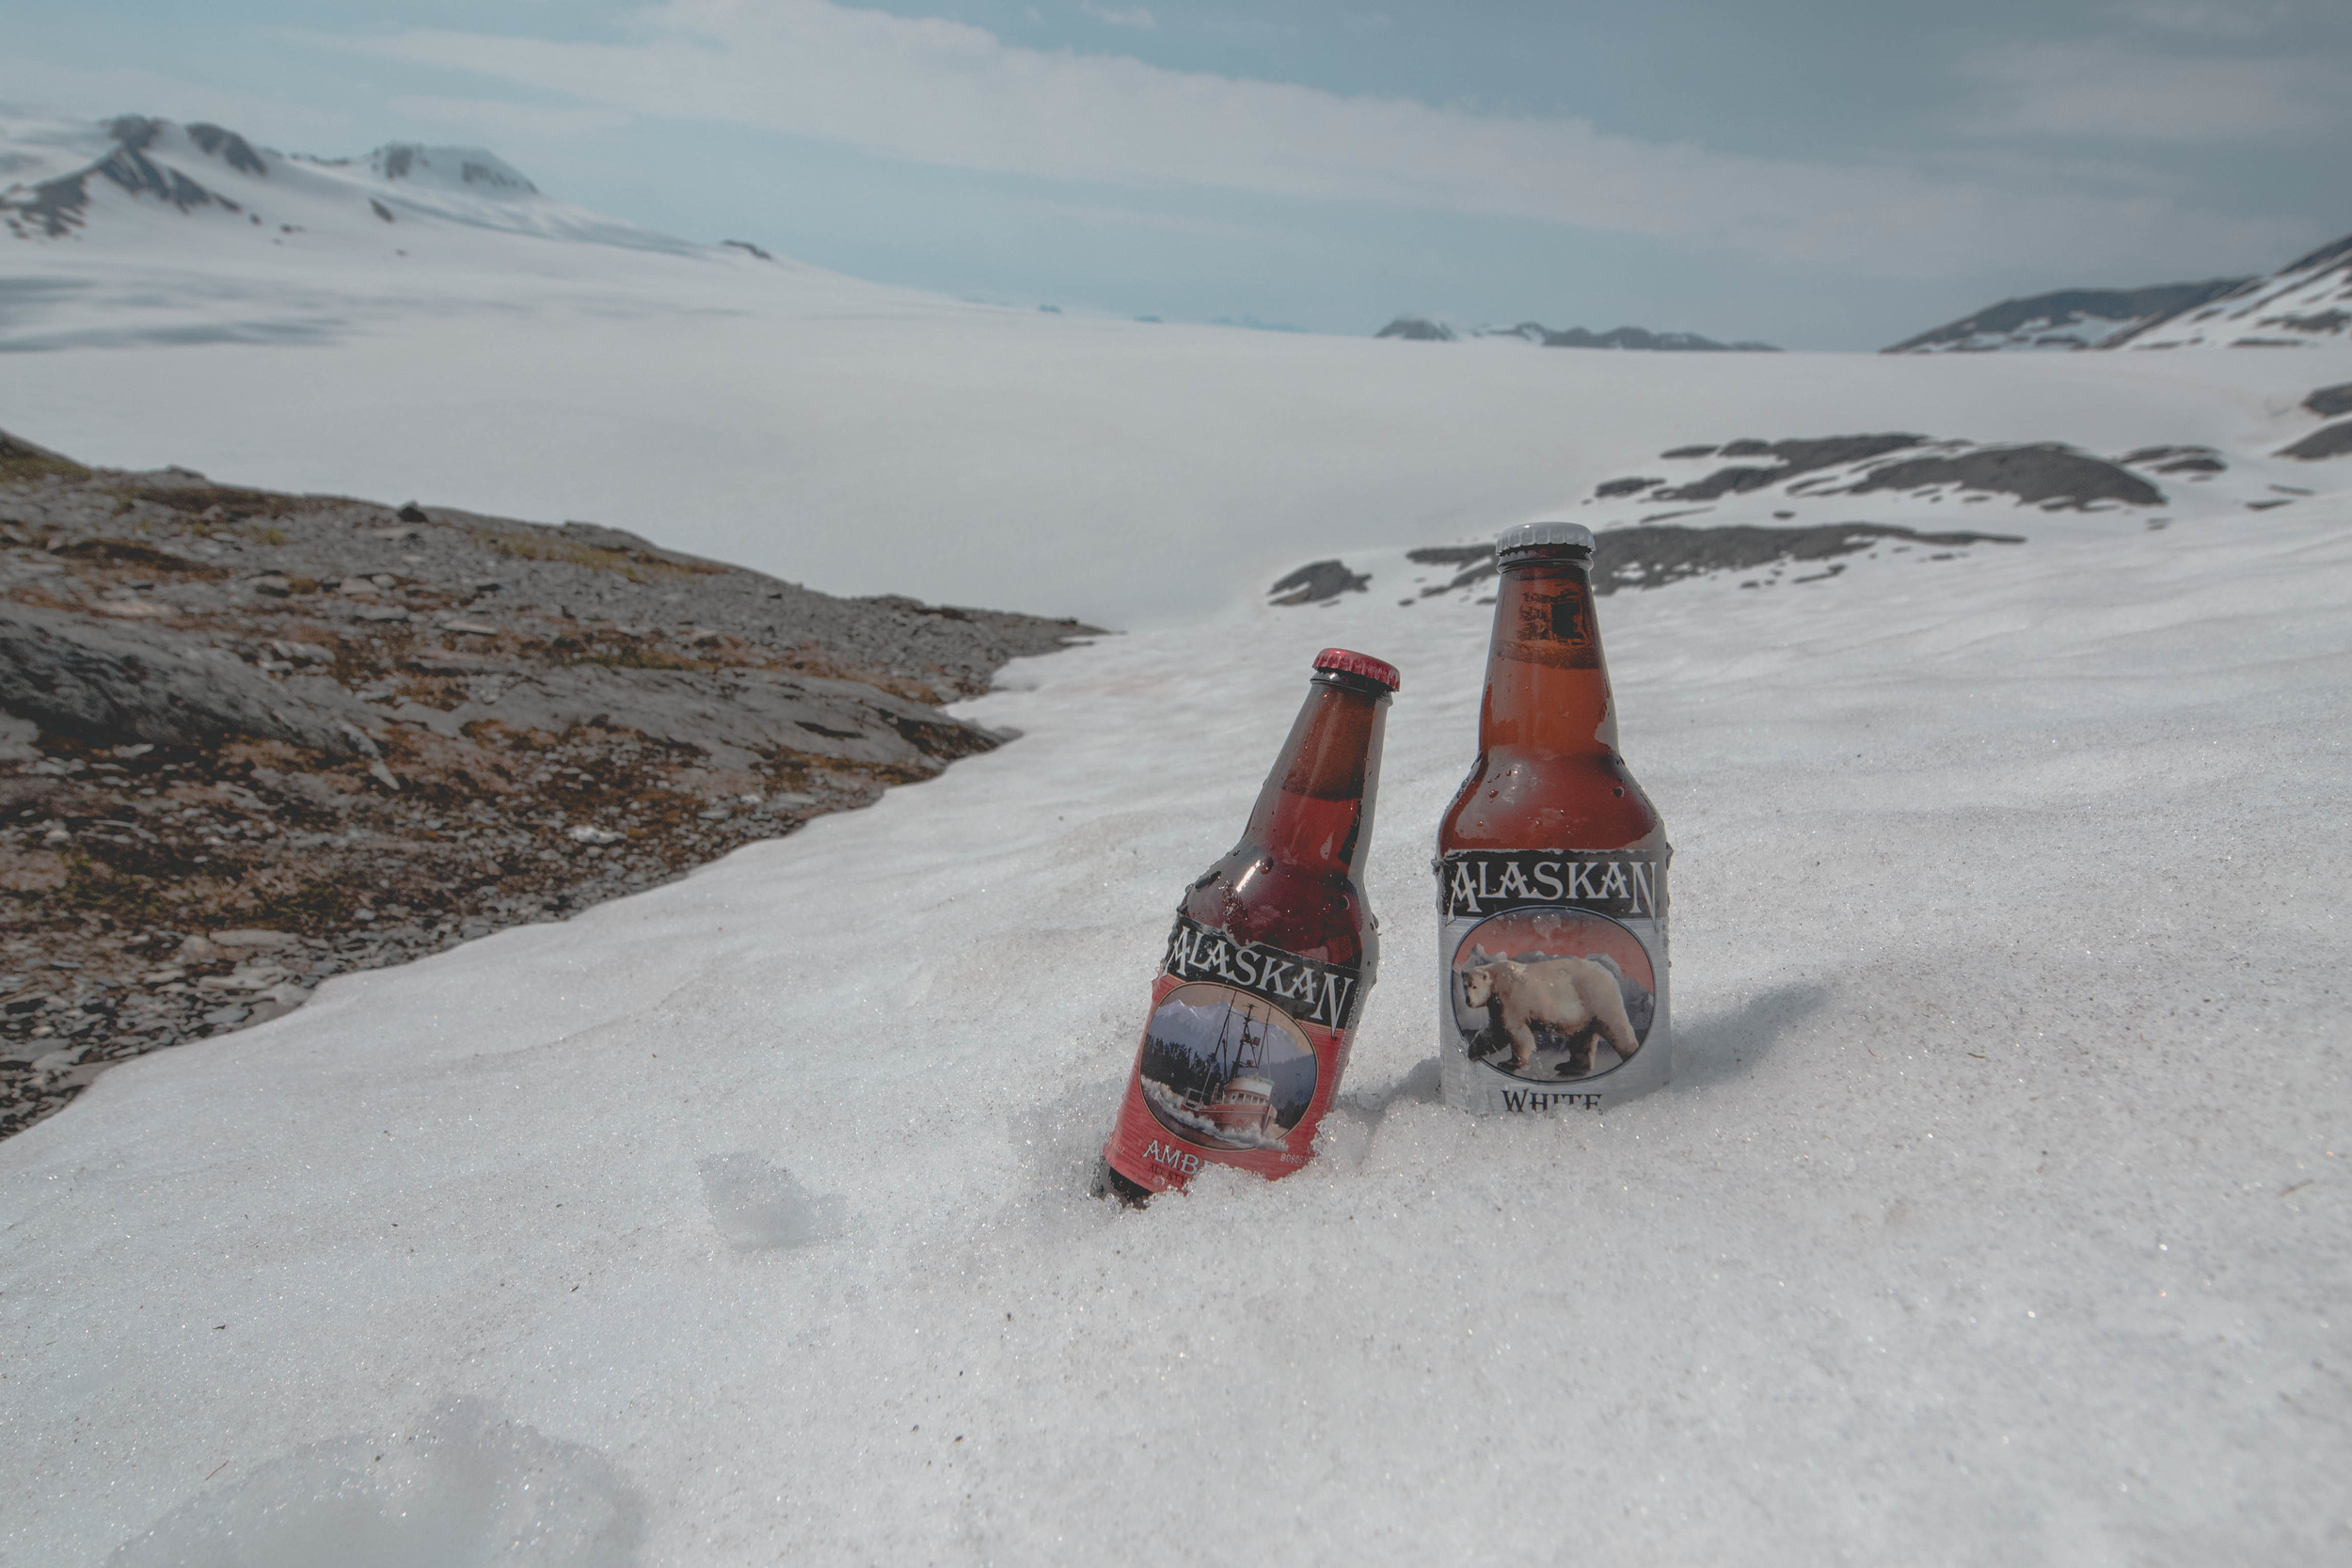 What else would you drink at the peak of your 3 hour, 3000 ft elevation hike but an alaskan brew?